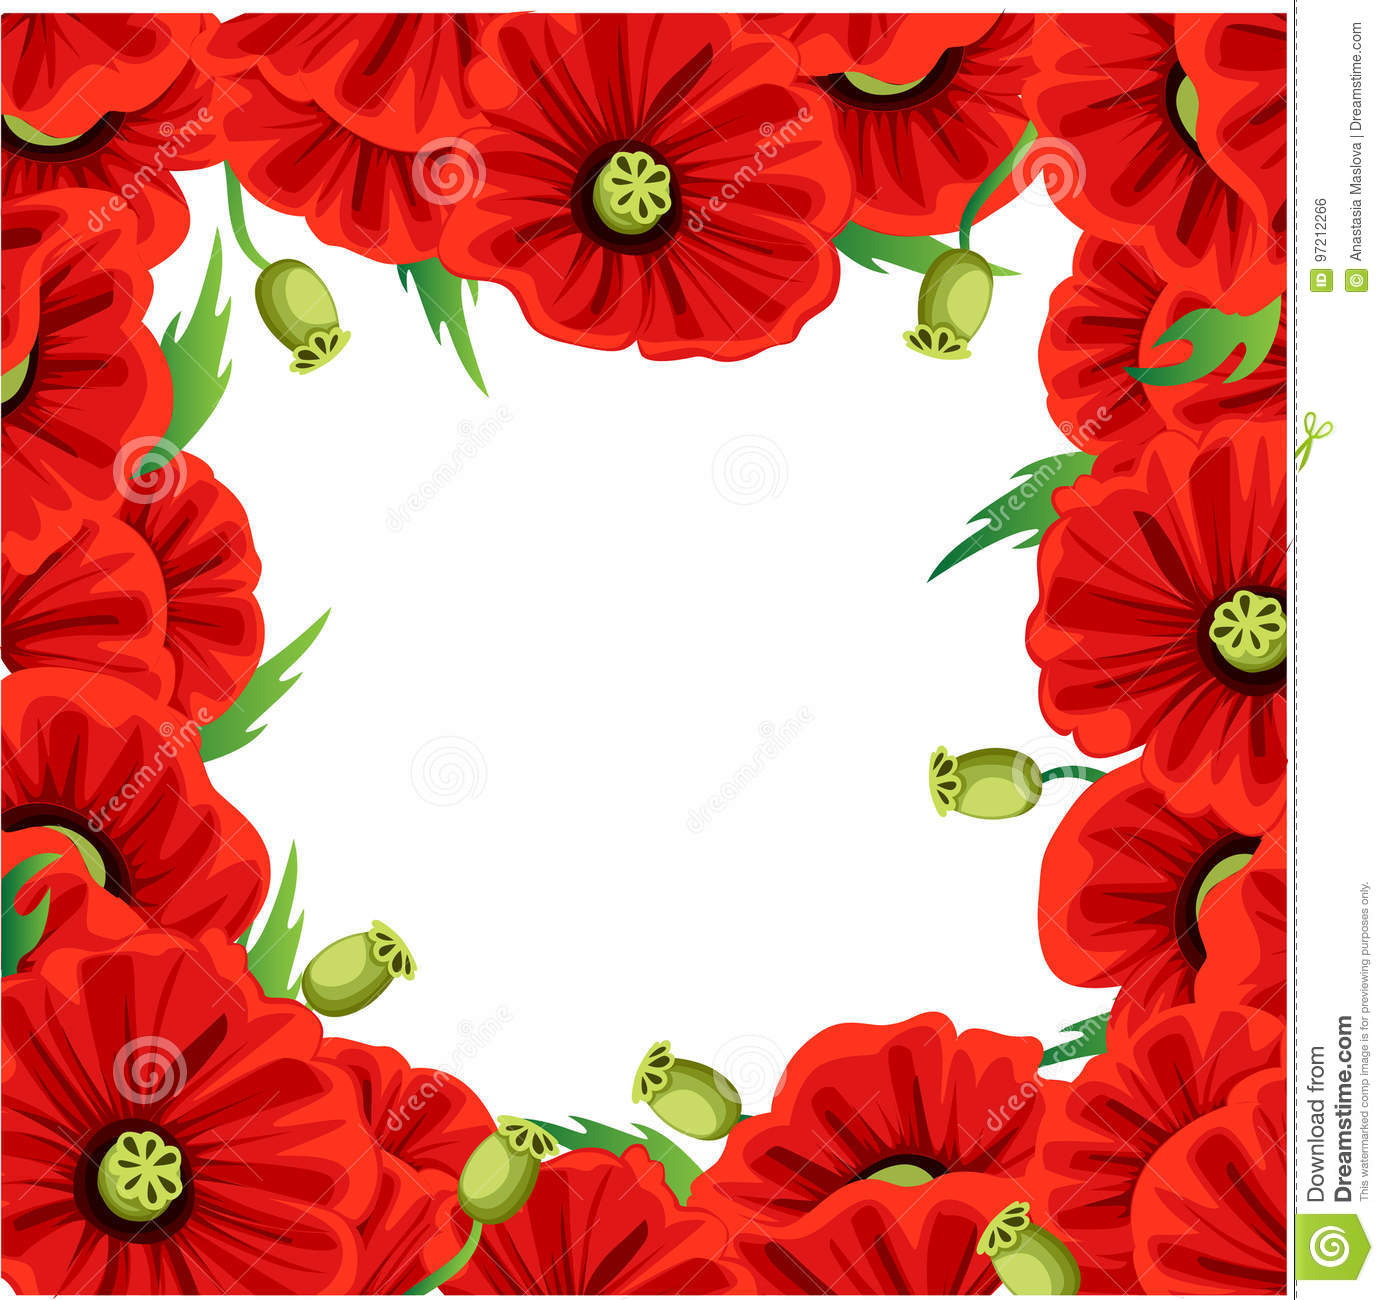 Red Poppy Flower Isolated On White Background Vector Red Romantic